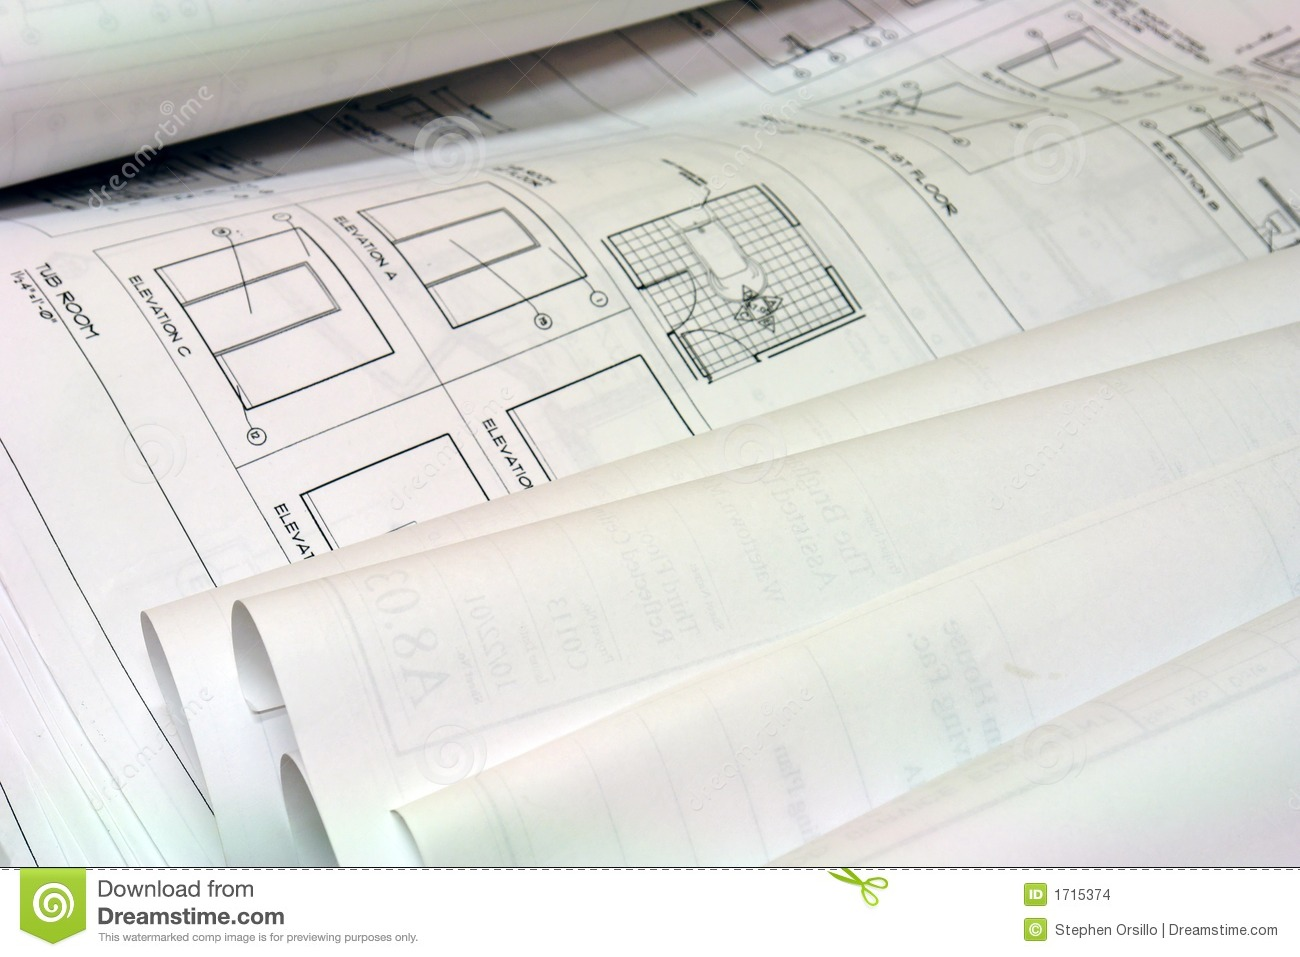 Construction plan printing home design Building plan printing